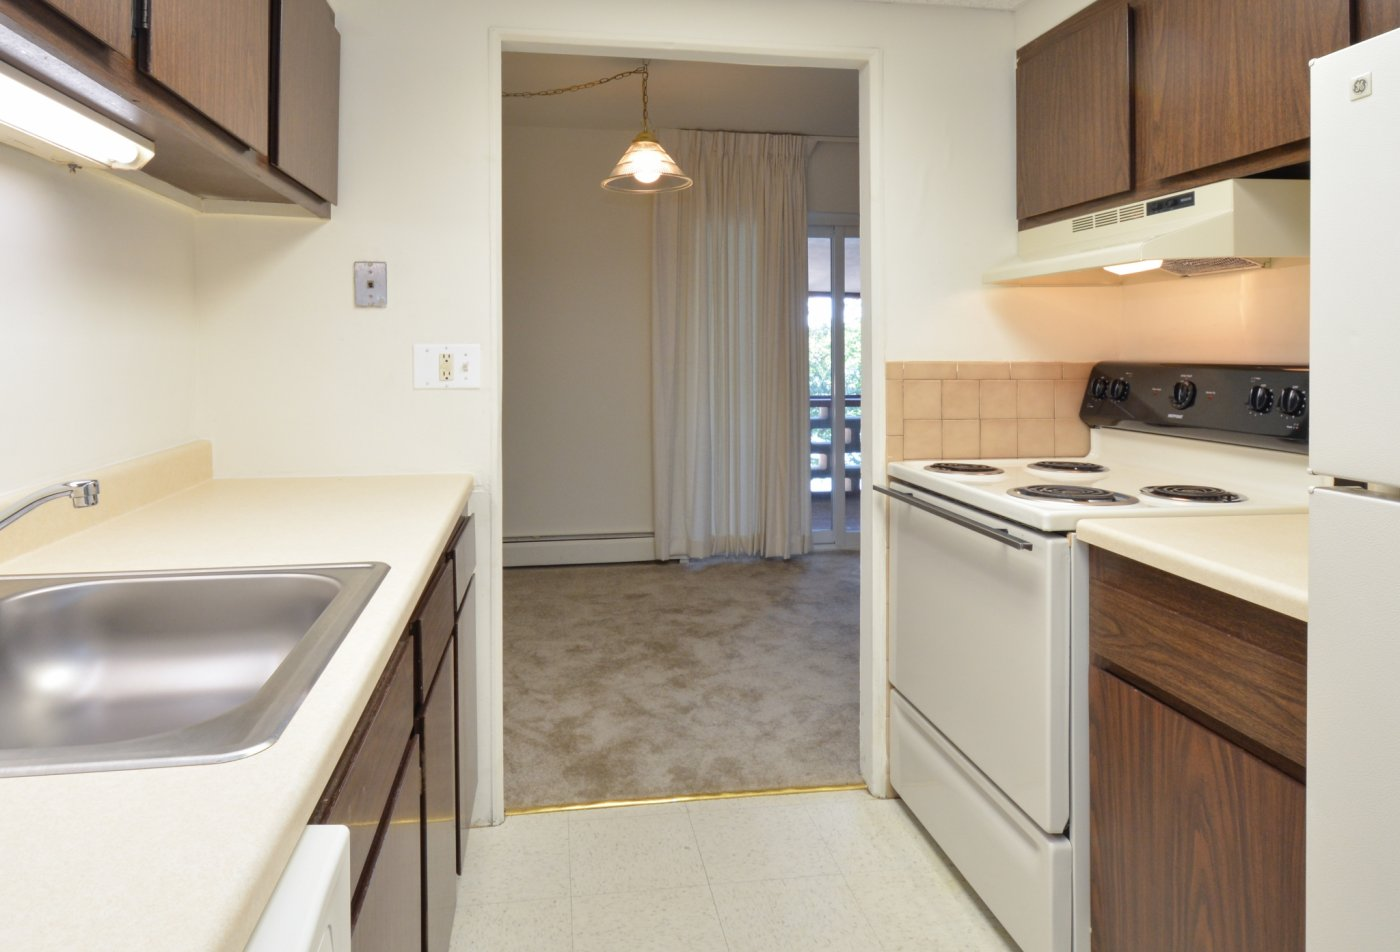 ... State Of The Art Kitchen | Dover DE Apartment Homes | Lake Club ...